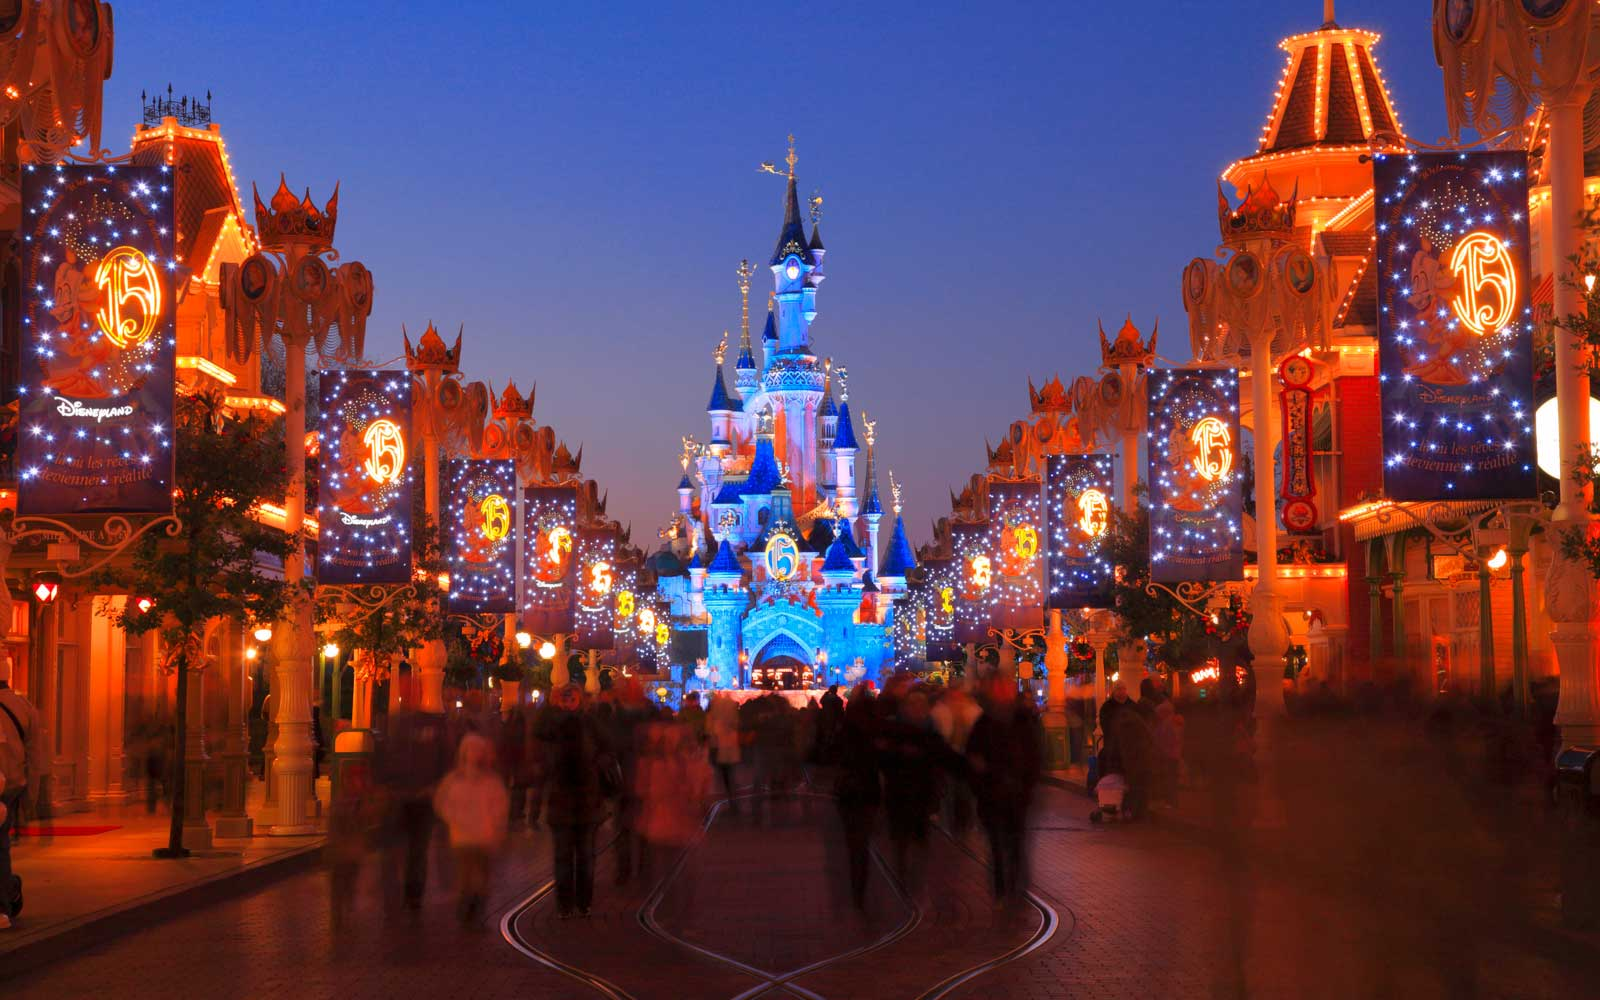 Paris Disney at Christmas time